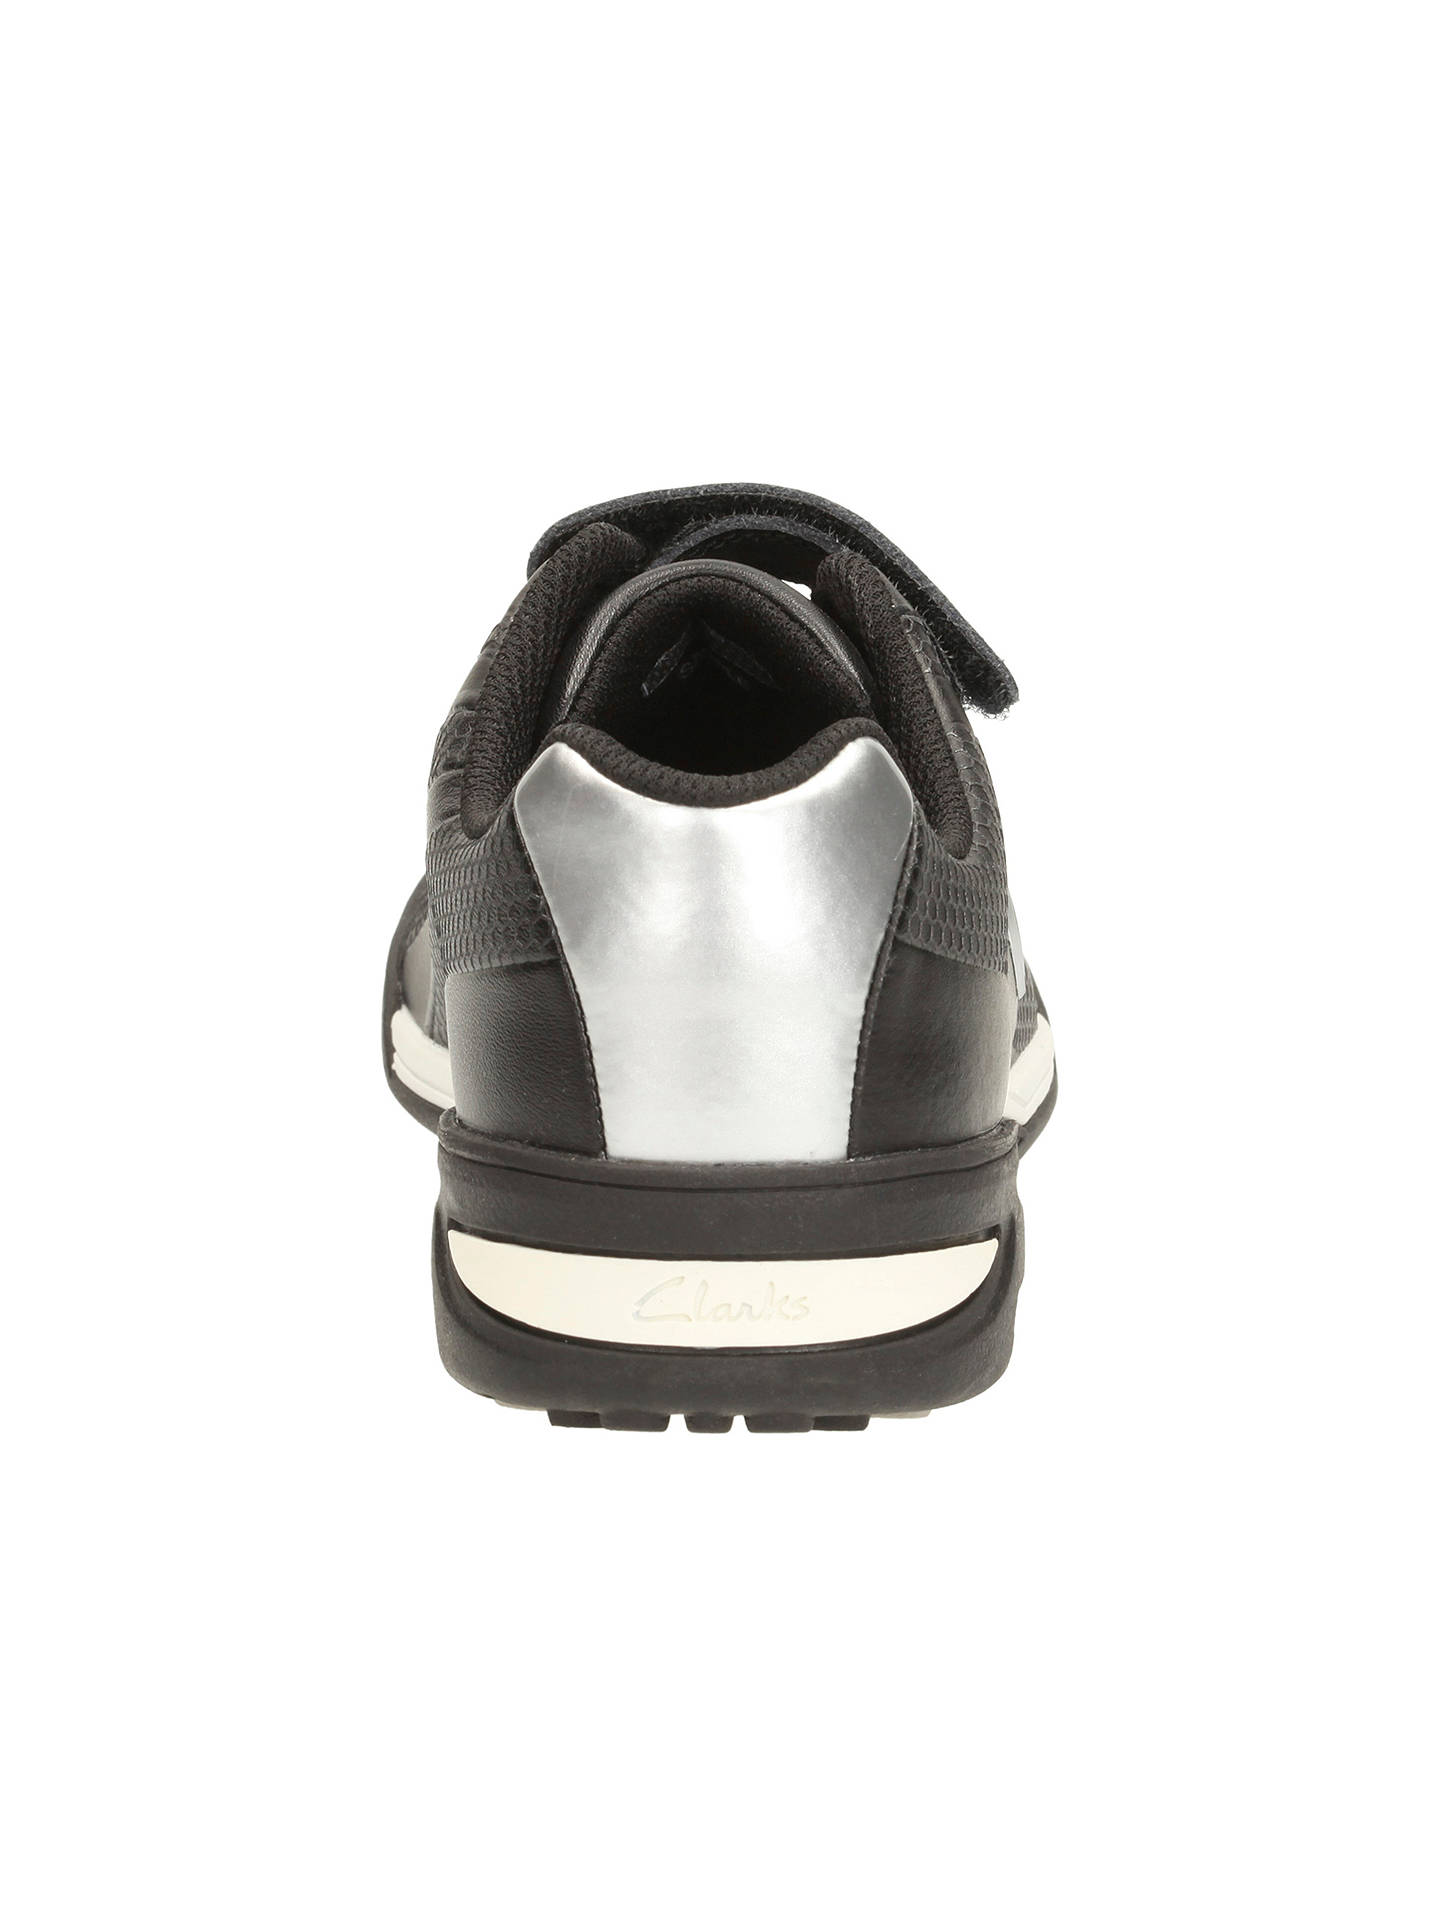 5a1e49b07524 ... Buy Clarks Children s Award Leap Astroturf Leather Trainers